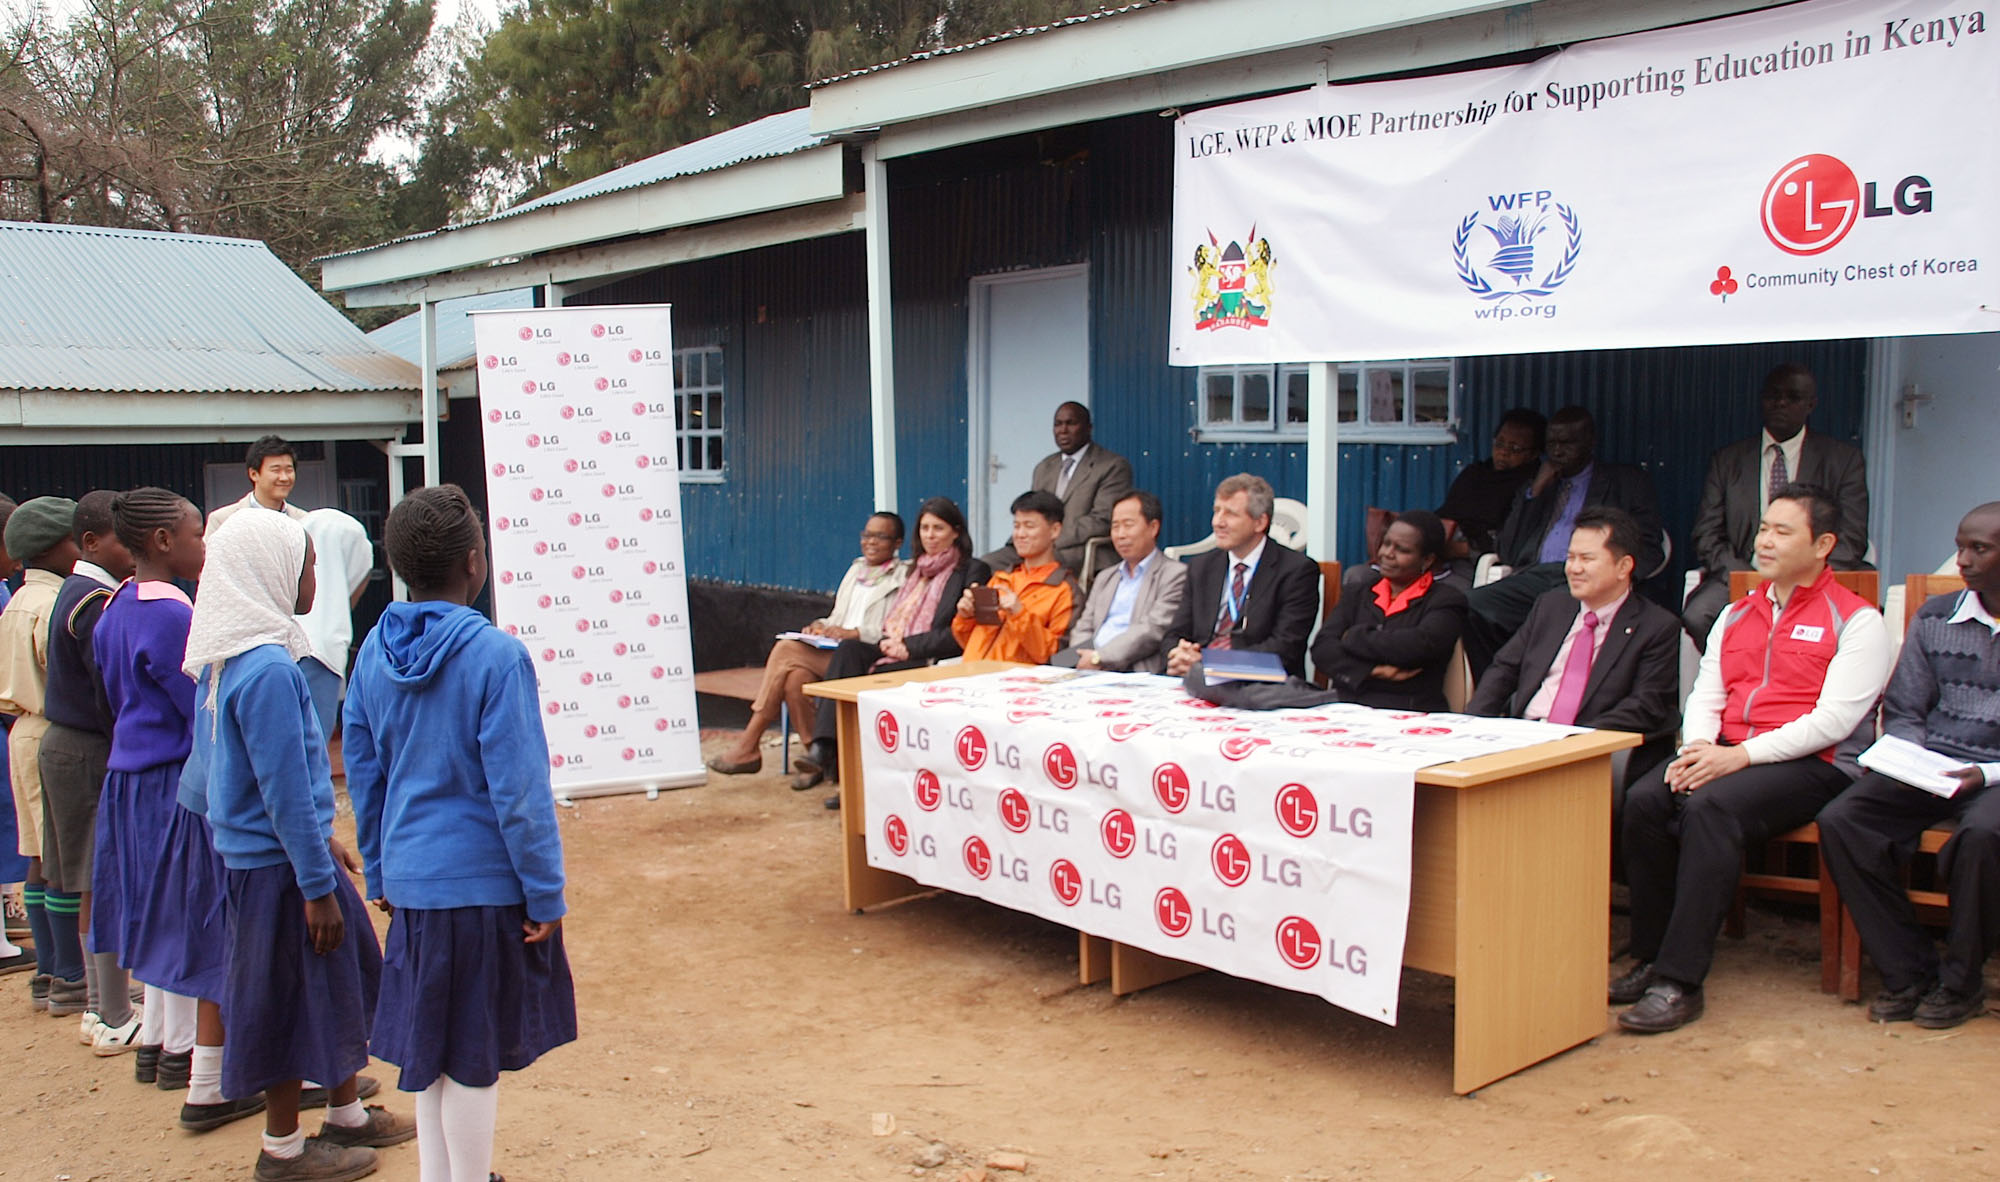 A photo taken at the partnership ceremony of LG, the UN World Food Programme, and MOE for supporting education in Kenya.